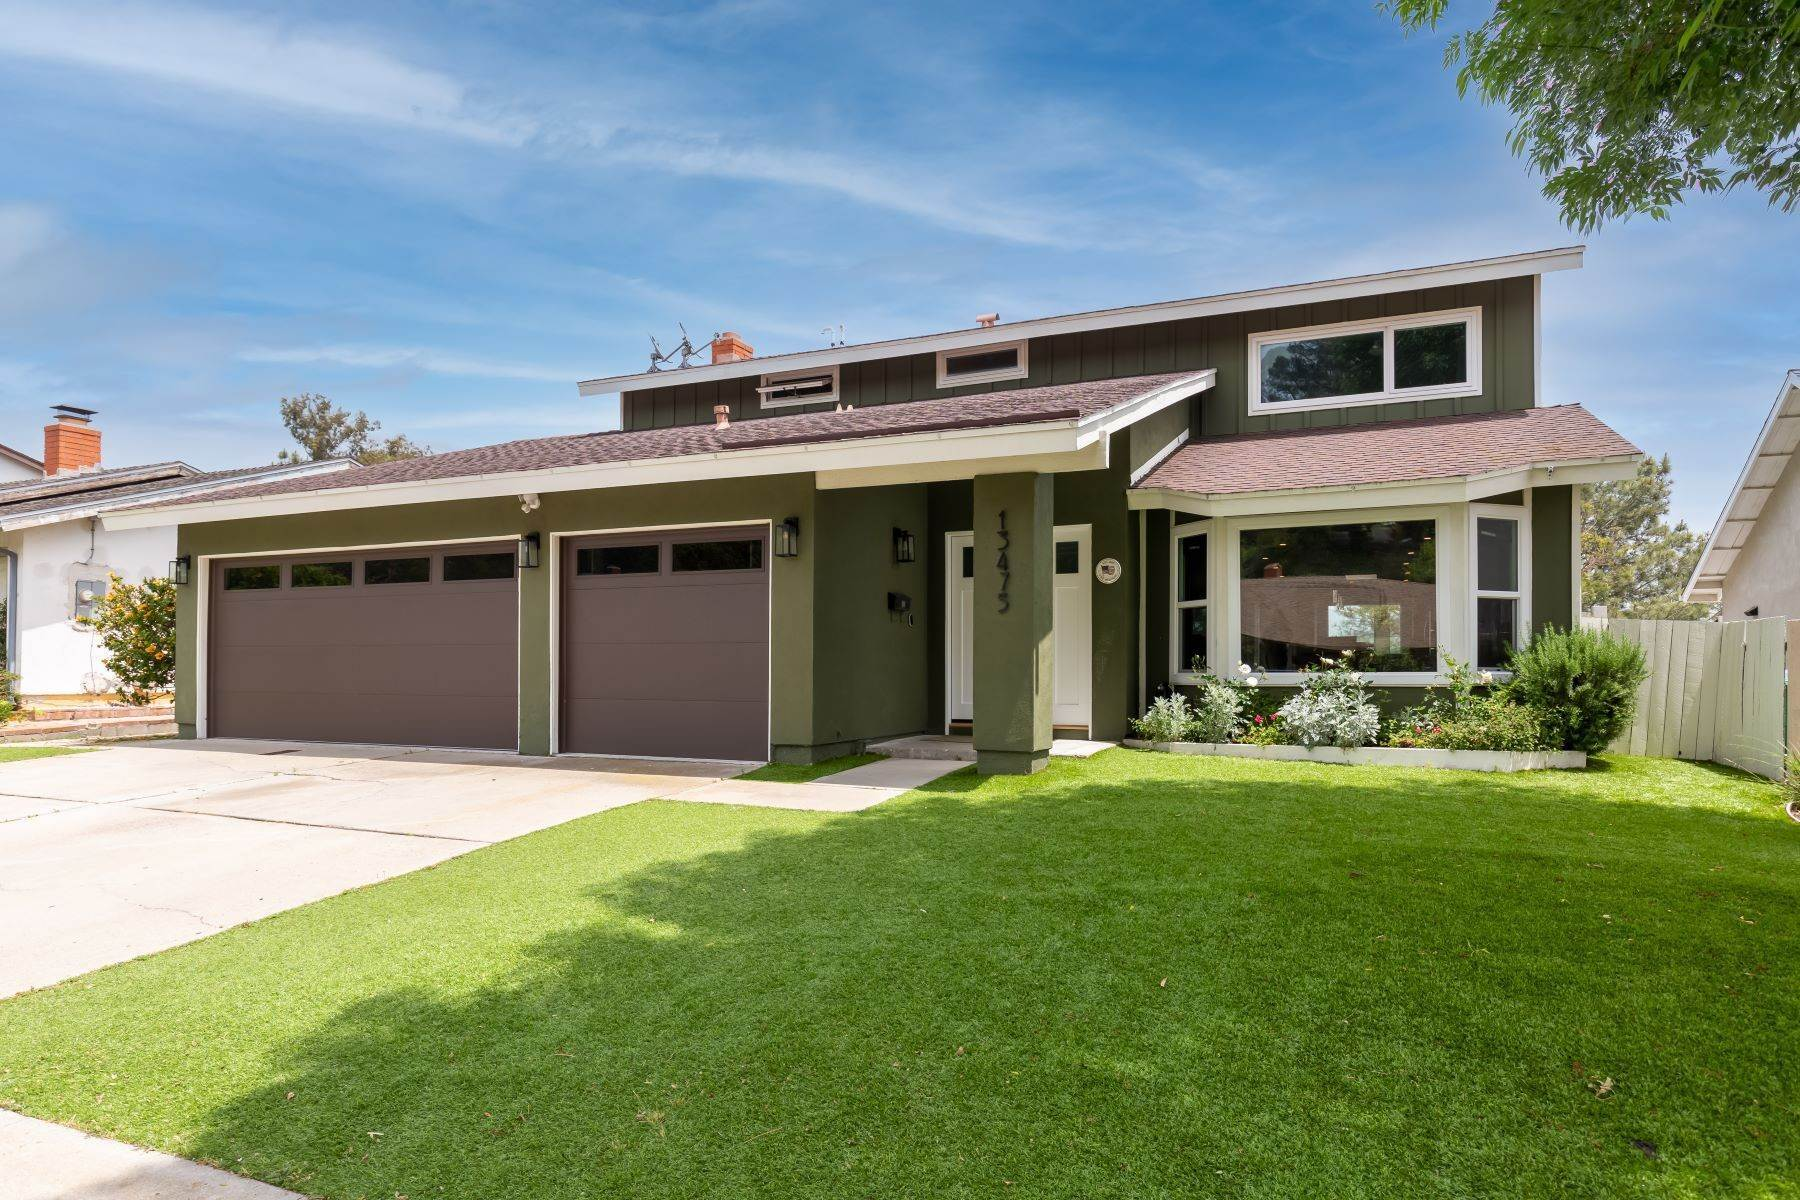 2. Single Family Homes for Sale at 13475 Portofino Drive, Del Mar, CA 92014 13475 Portofino Drive Del Mar, California 92014 United States